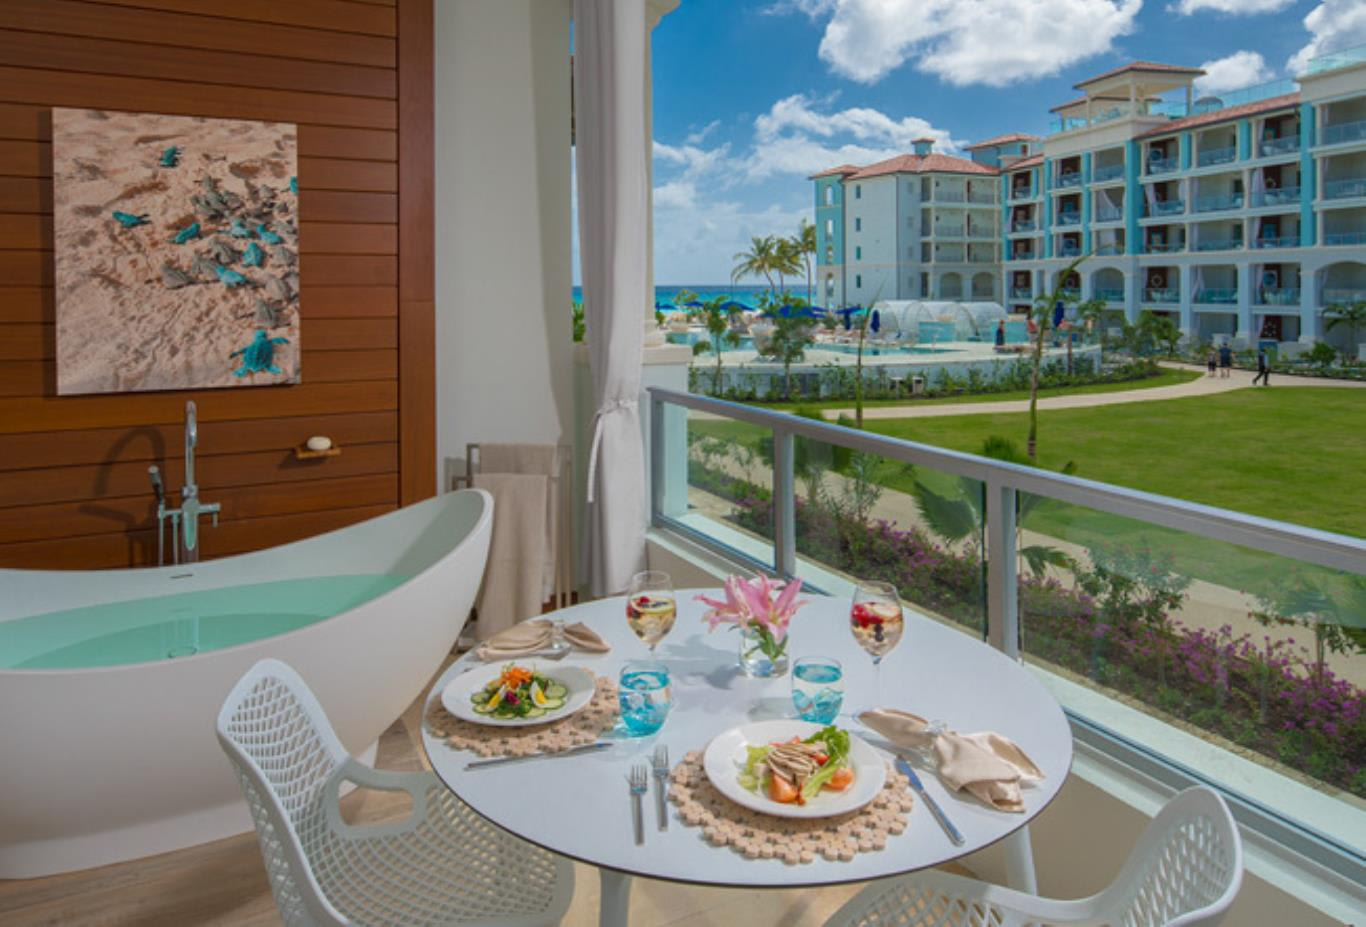 OSLB Royal Seaside Oceanview Crystal Lagoon Club Level Barbados Suite with Balcony Tranquillity Soaking Tub balcony